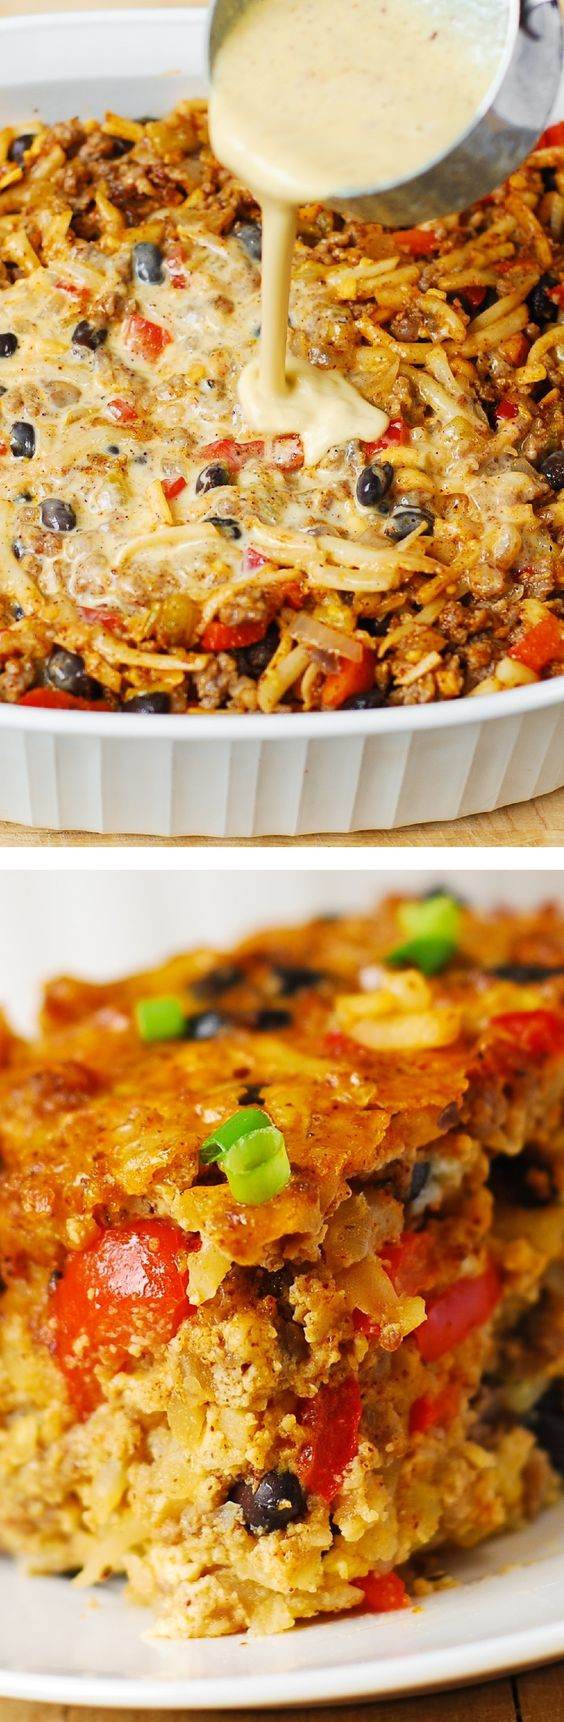 Southwestern Breakfast Casserole | Recipe | Hash browns ...